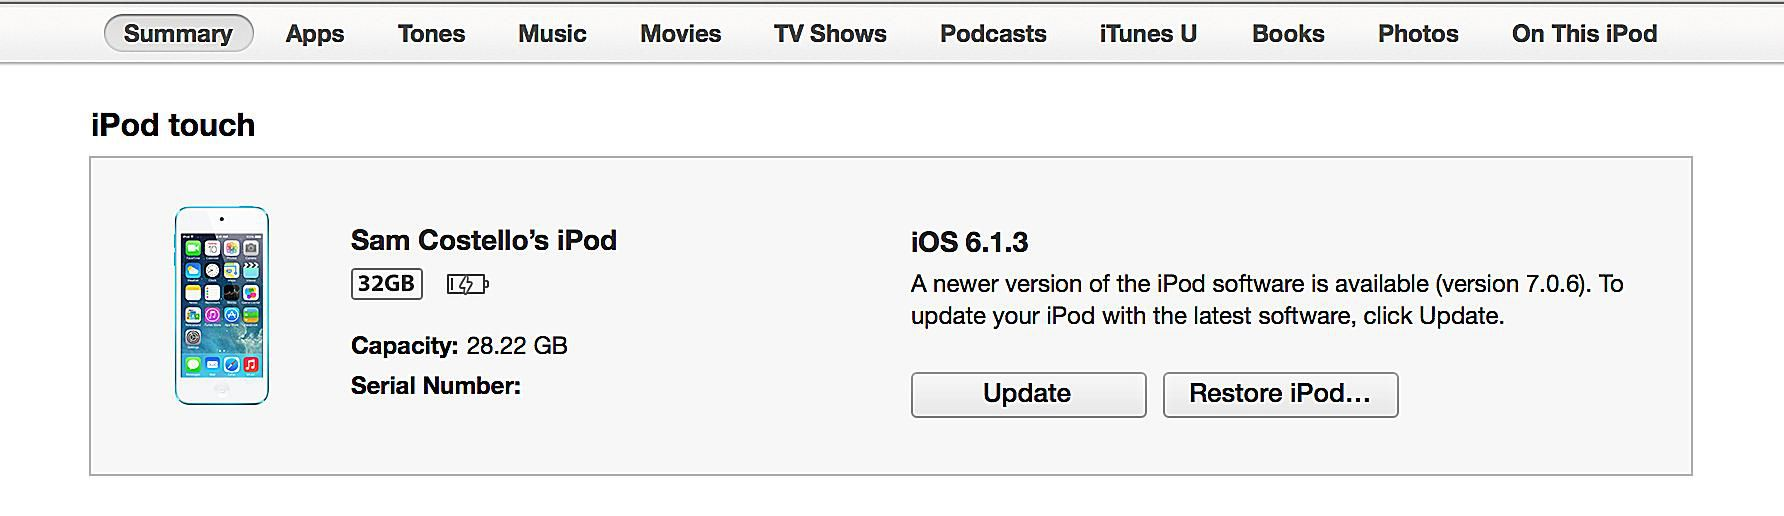 How to Update Your iPod s Operating System With iTunes